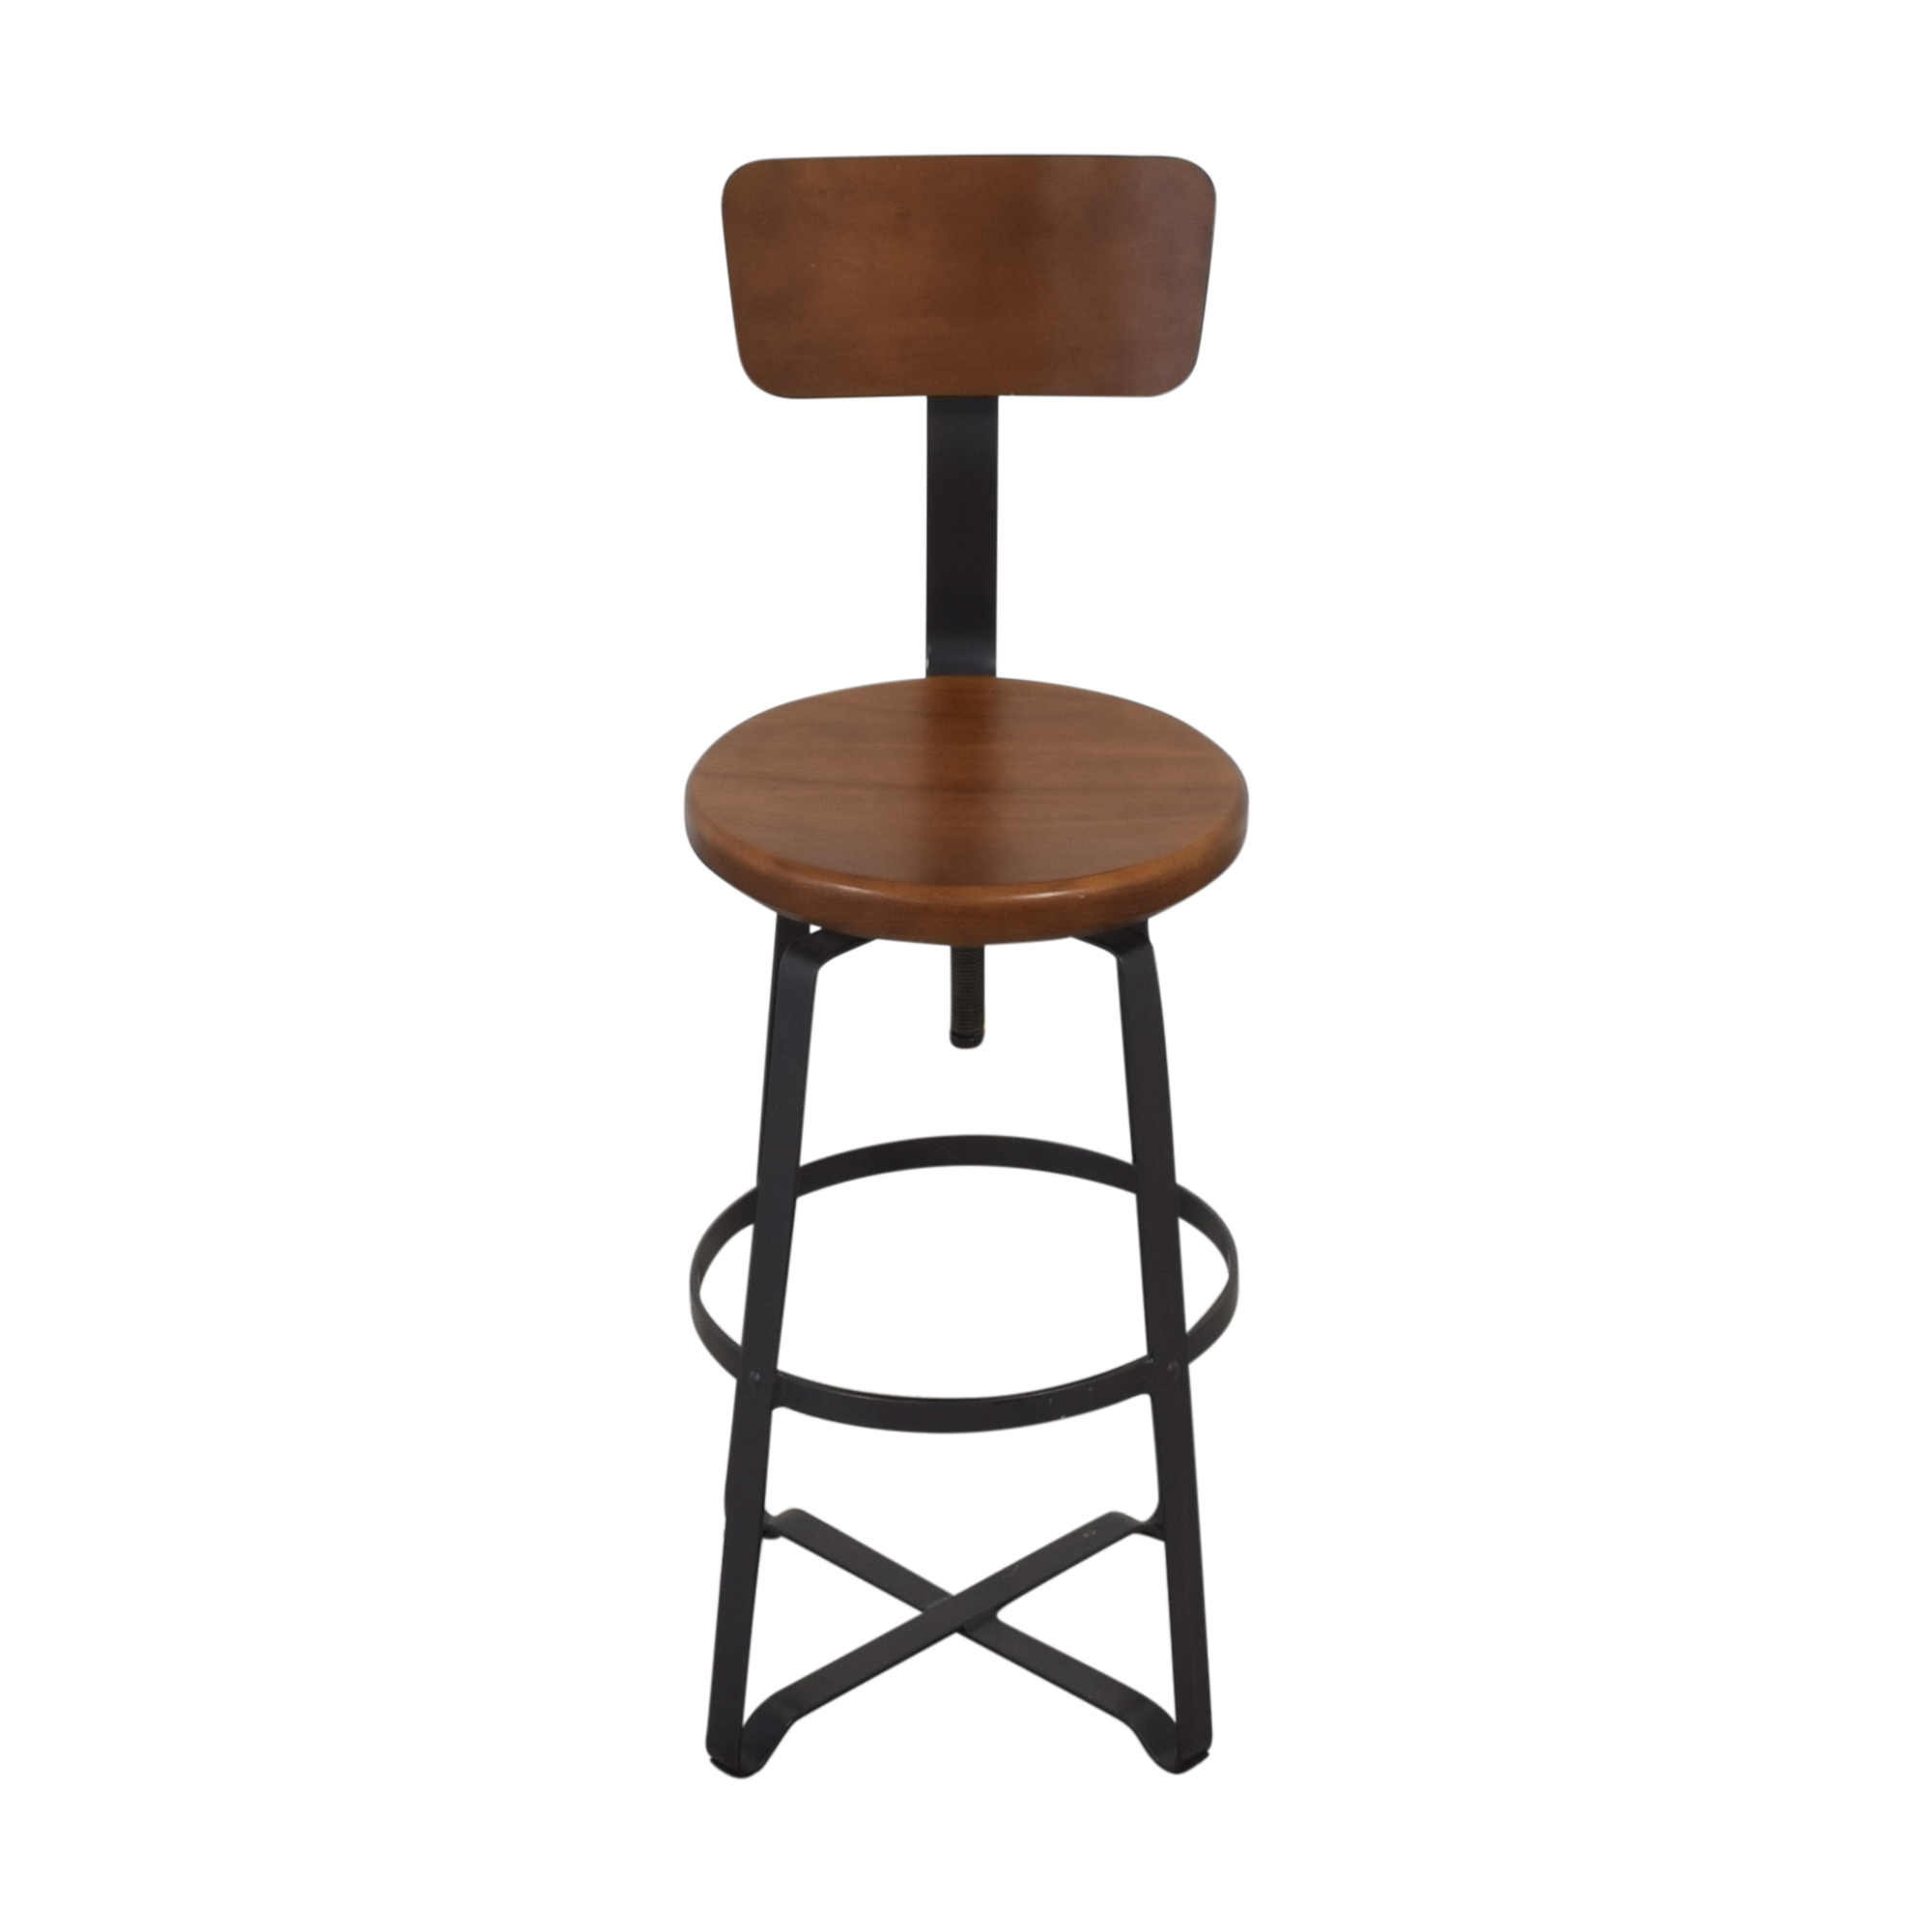 West Elm West Elm Adjustable Industrial Stool with Back pa